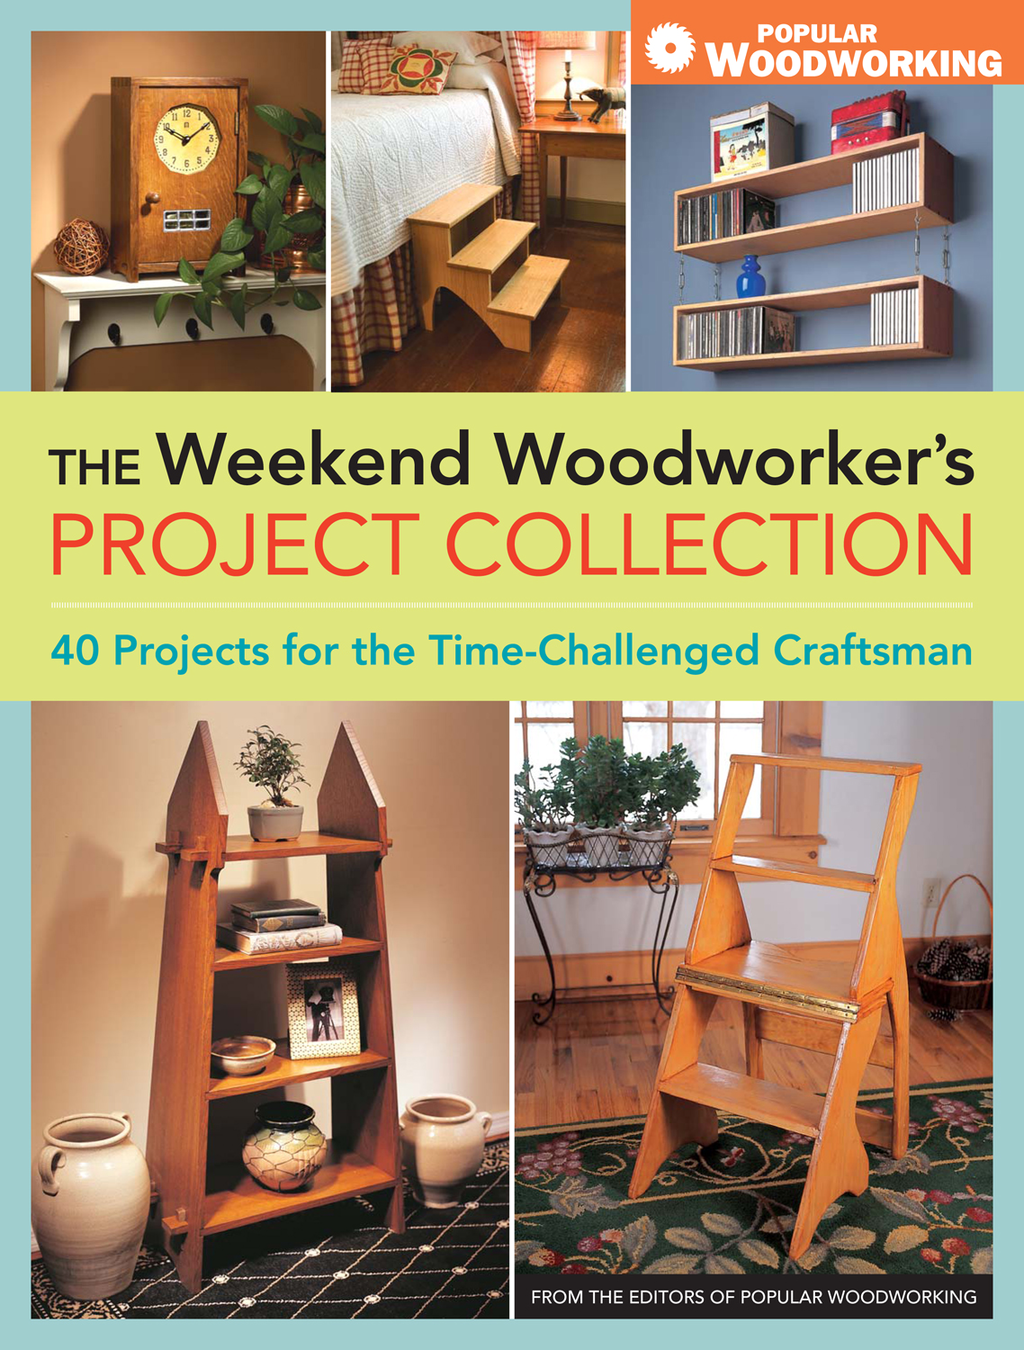 The Weekend Woodworker's Project Collection By: Editors of Popular Woodworking